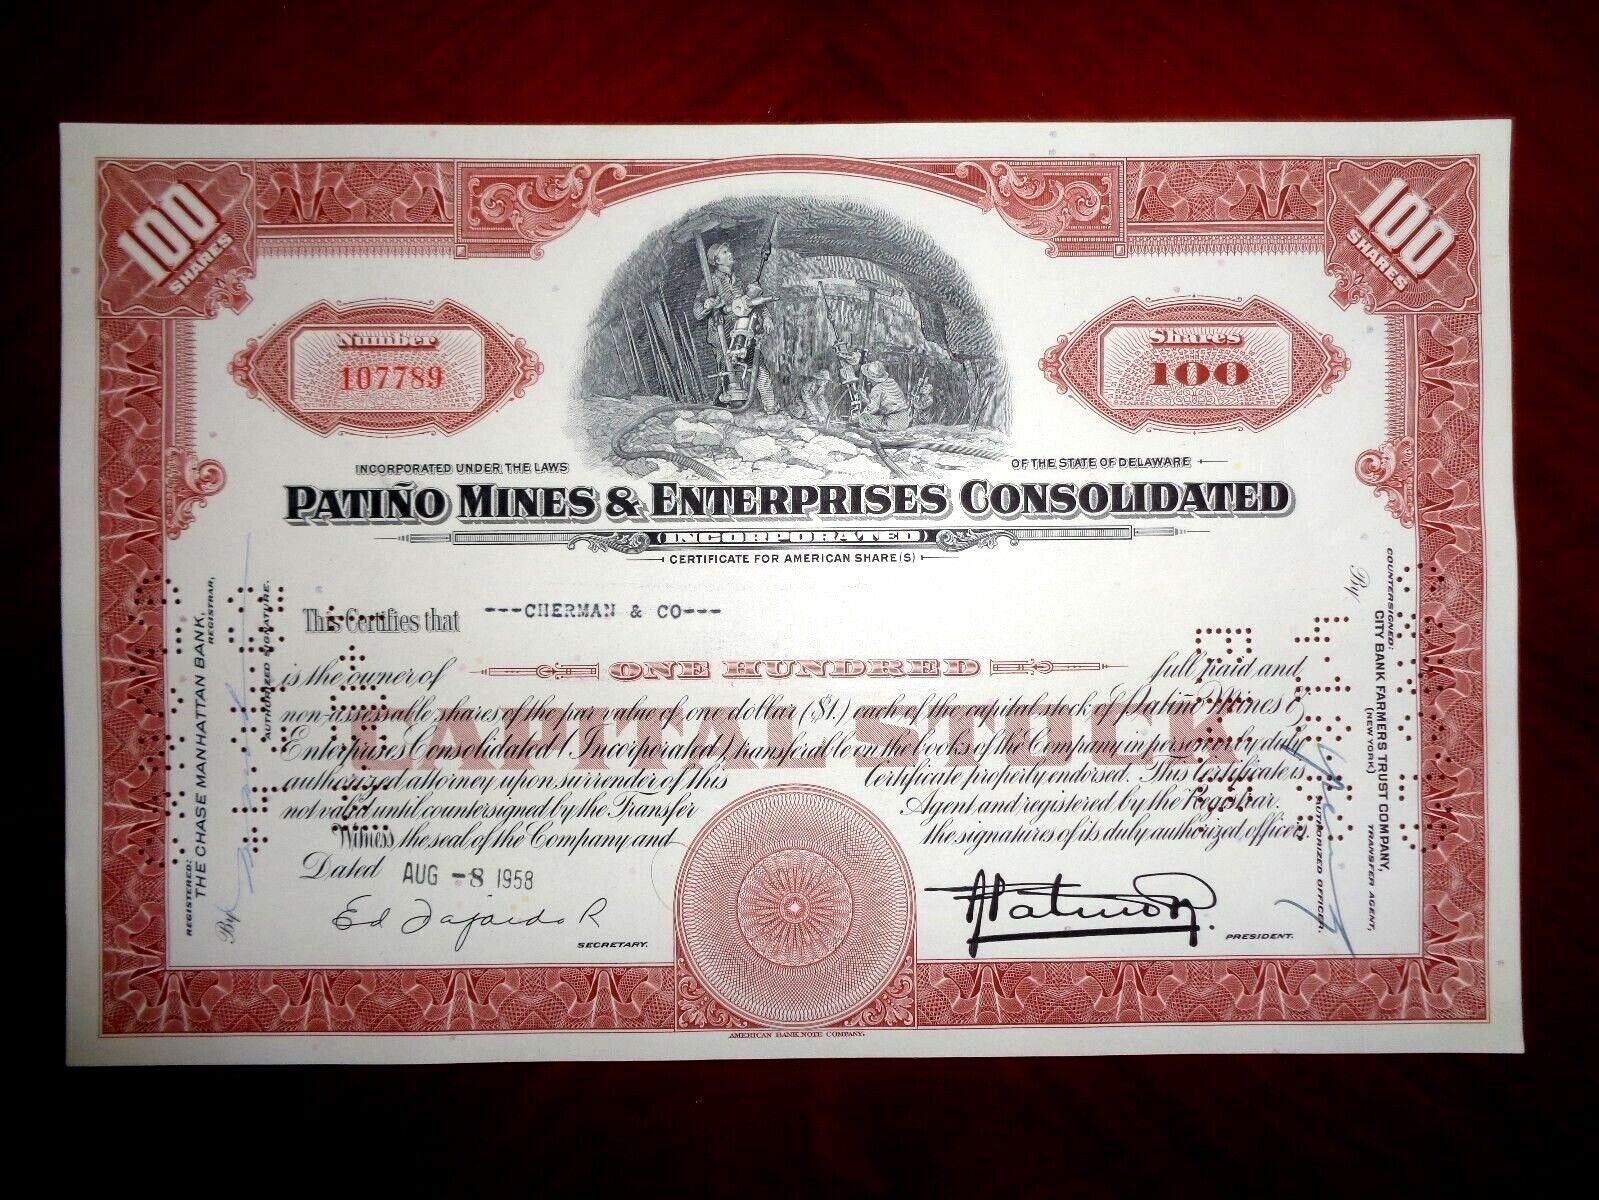 Patiño Mines & Enterprises Consolidated 1958-61 Share Certificate